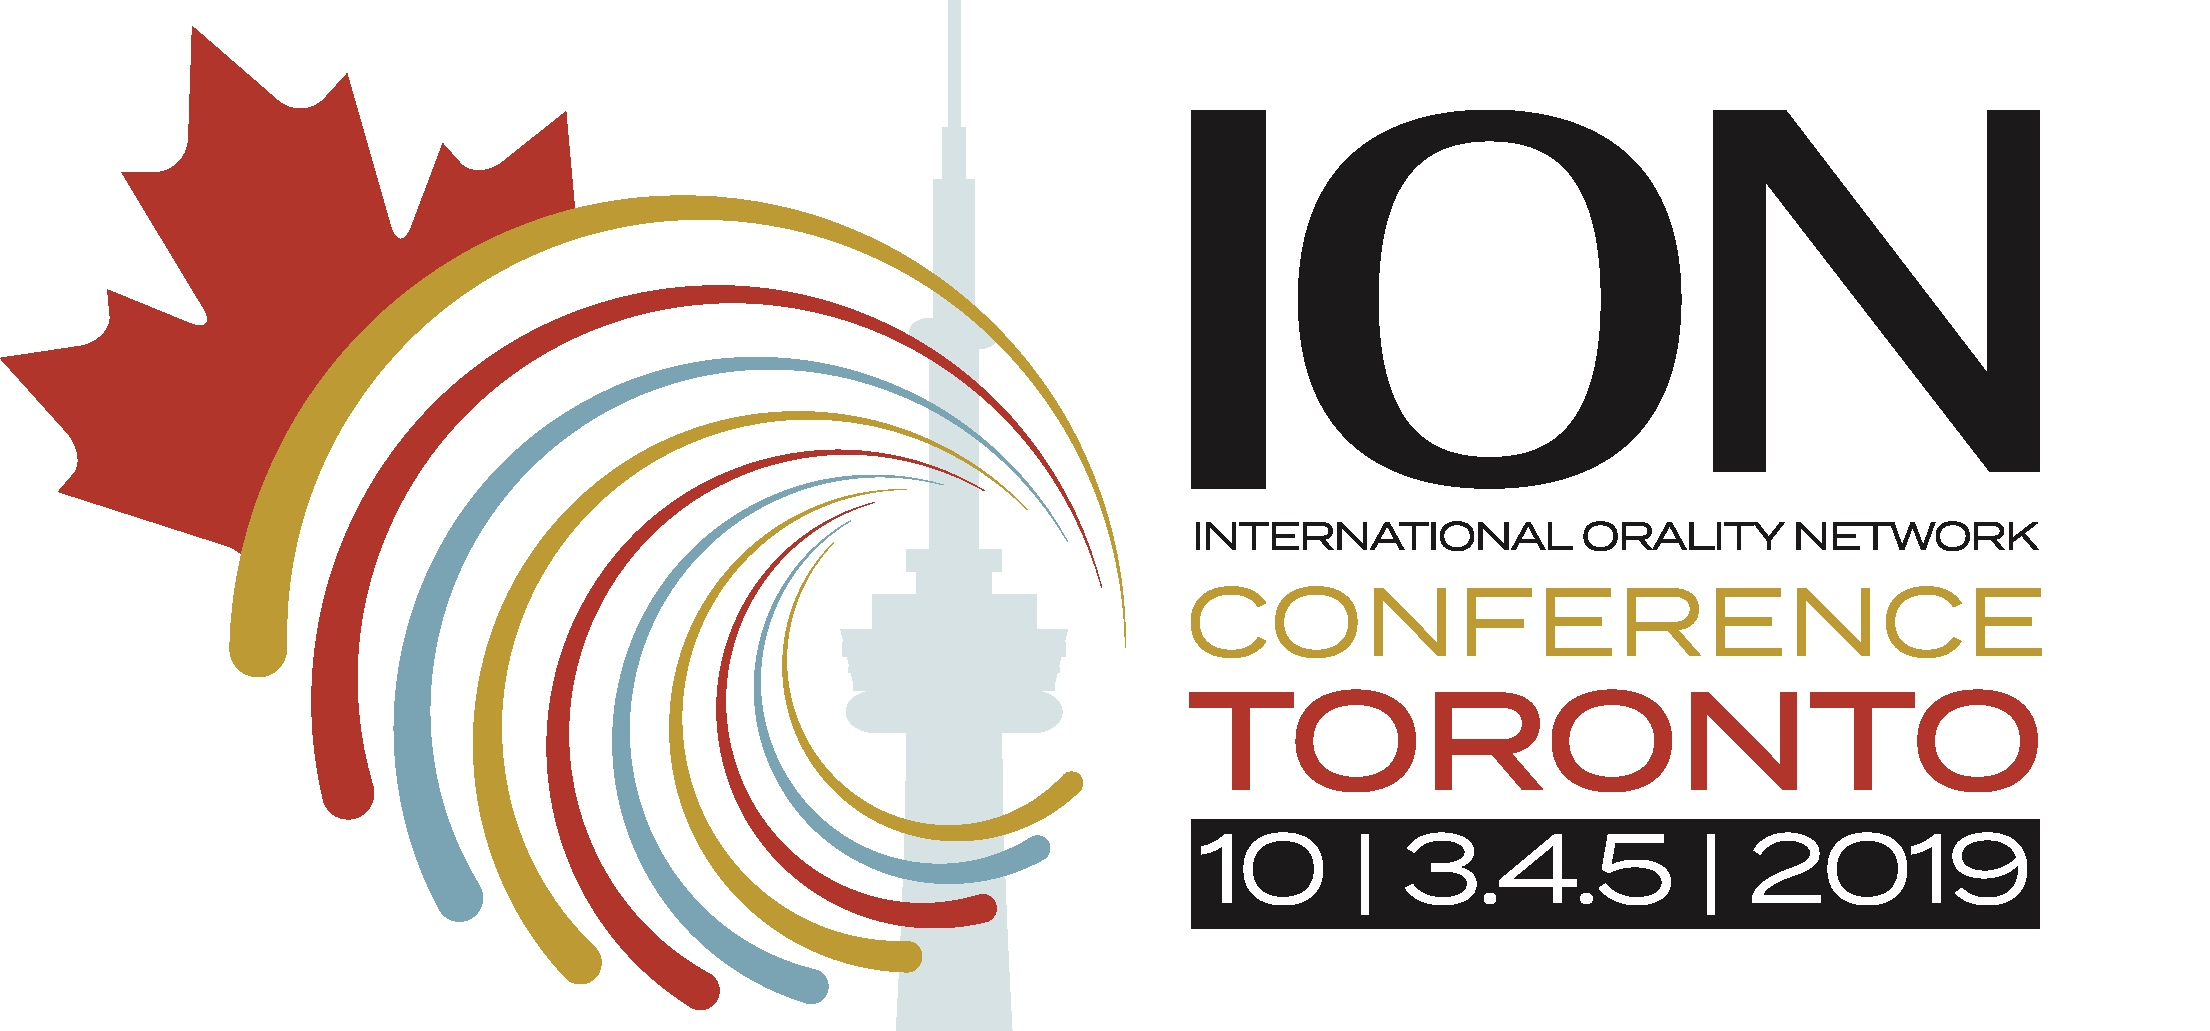 Tickets for International Orality Network, Regional Conference in Toronto from BuzzTix